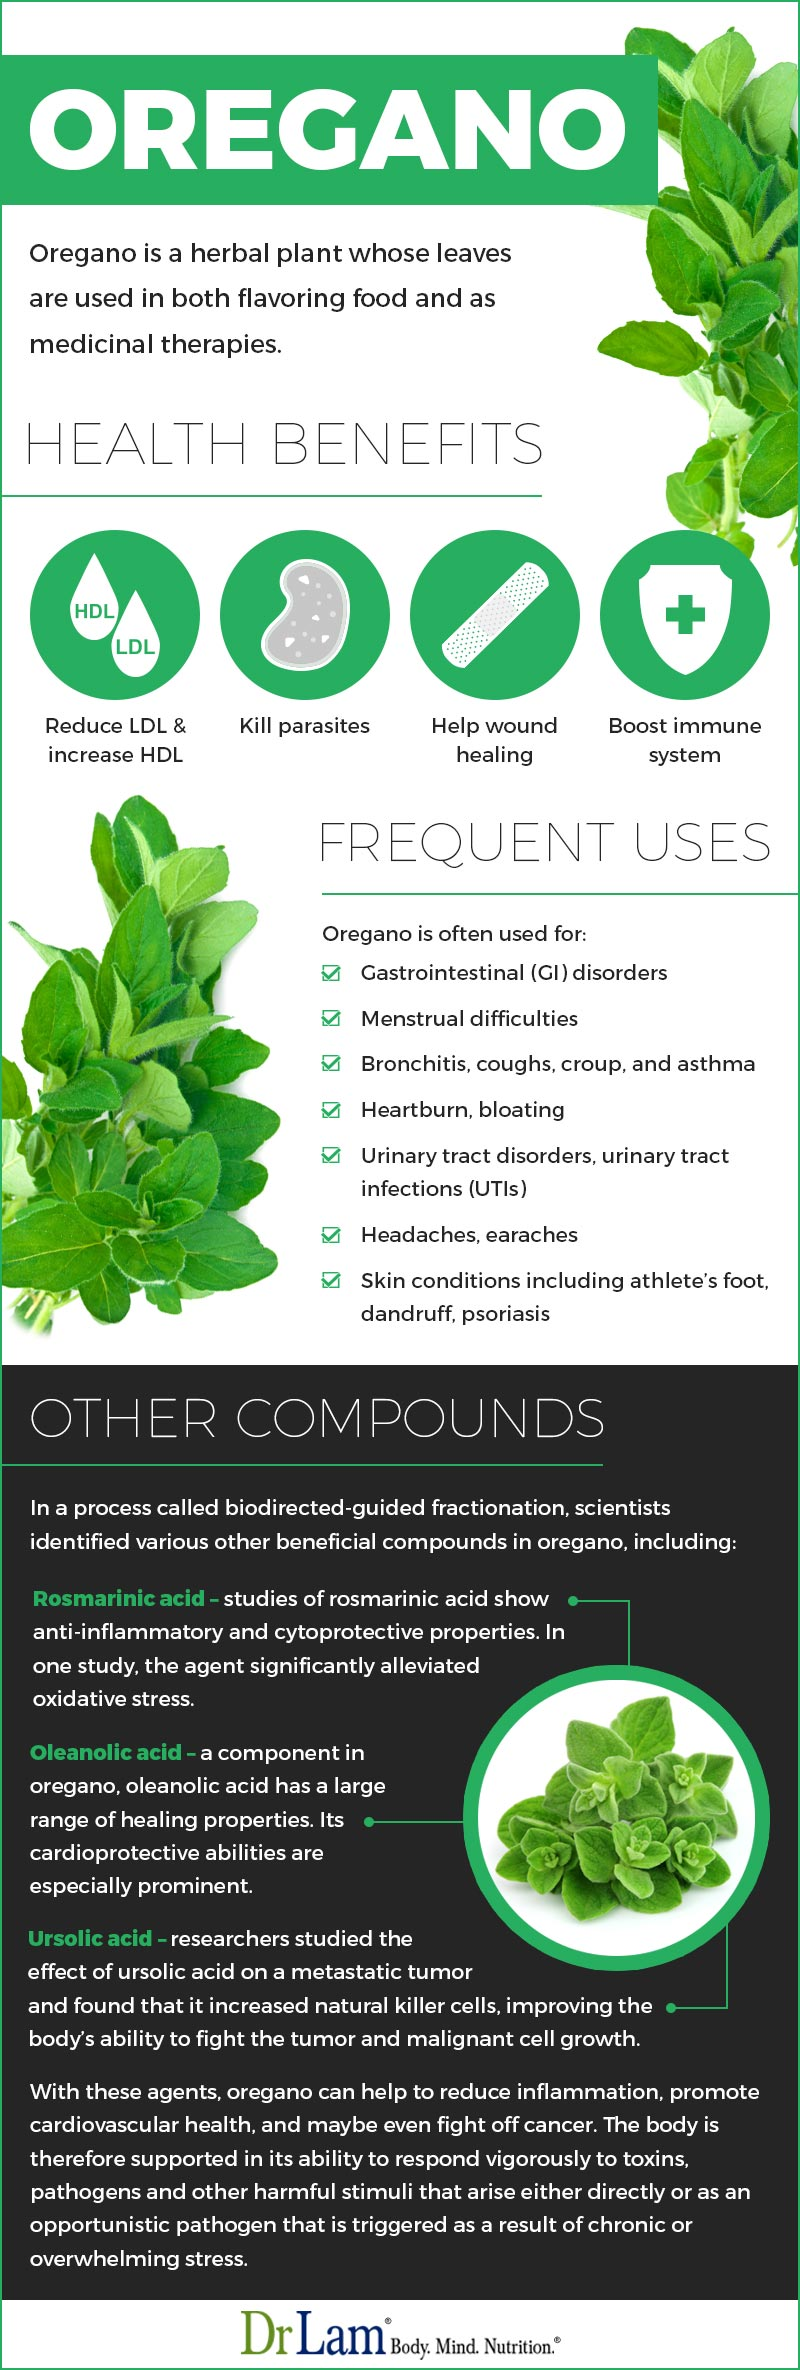 Check out this easy to understand infographic about oregano health benefits